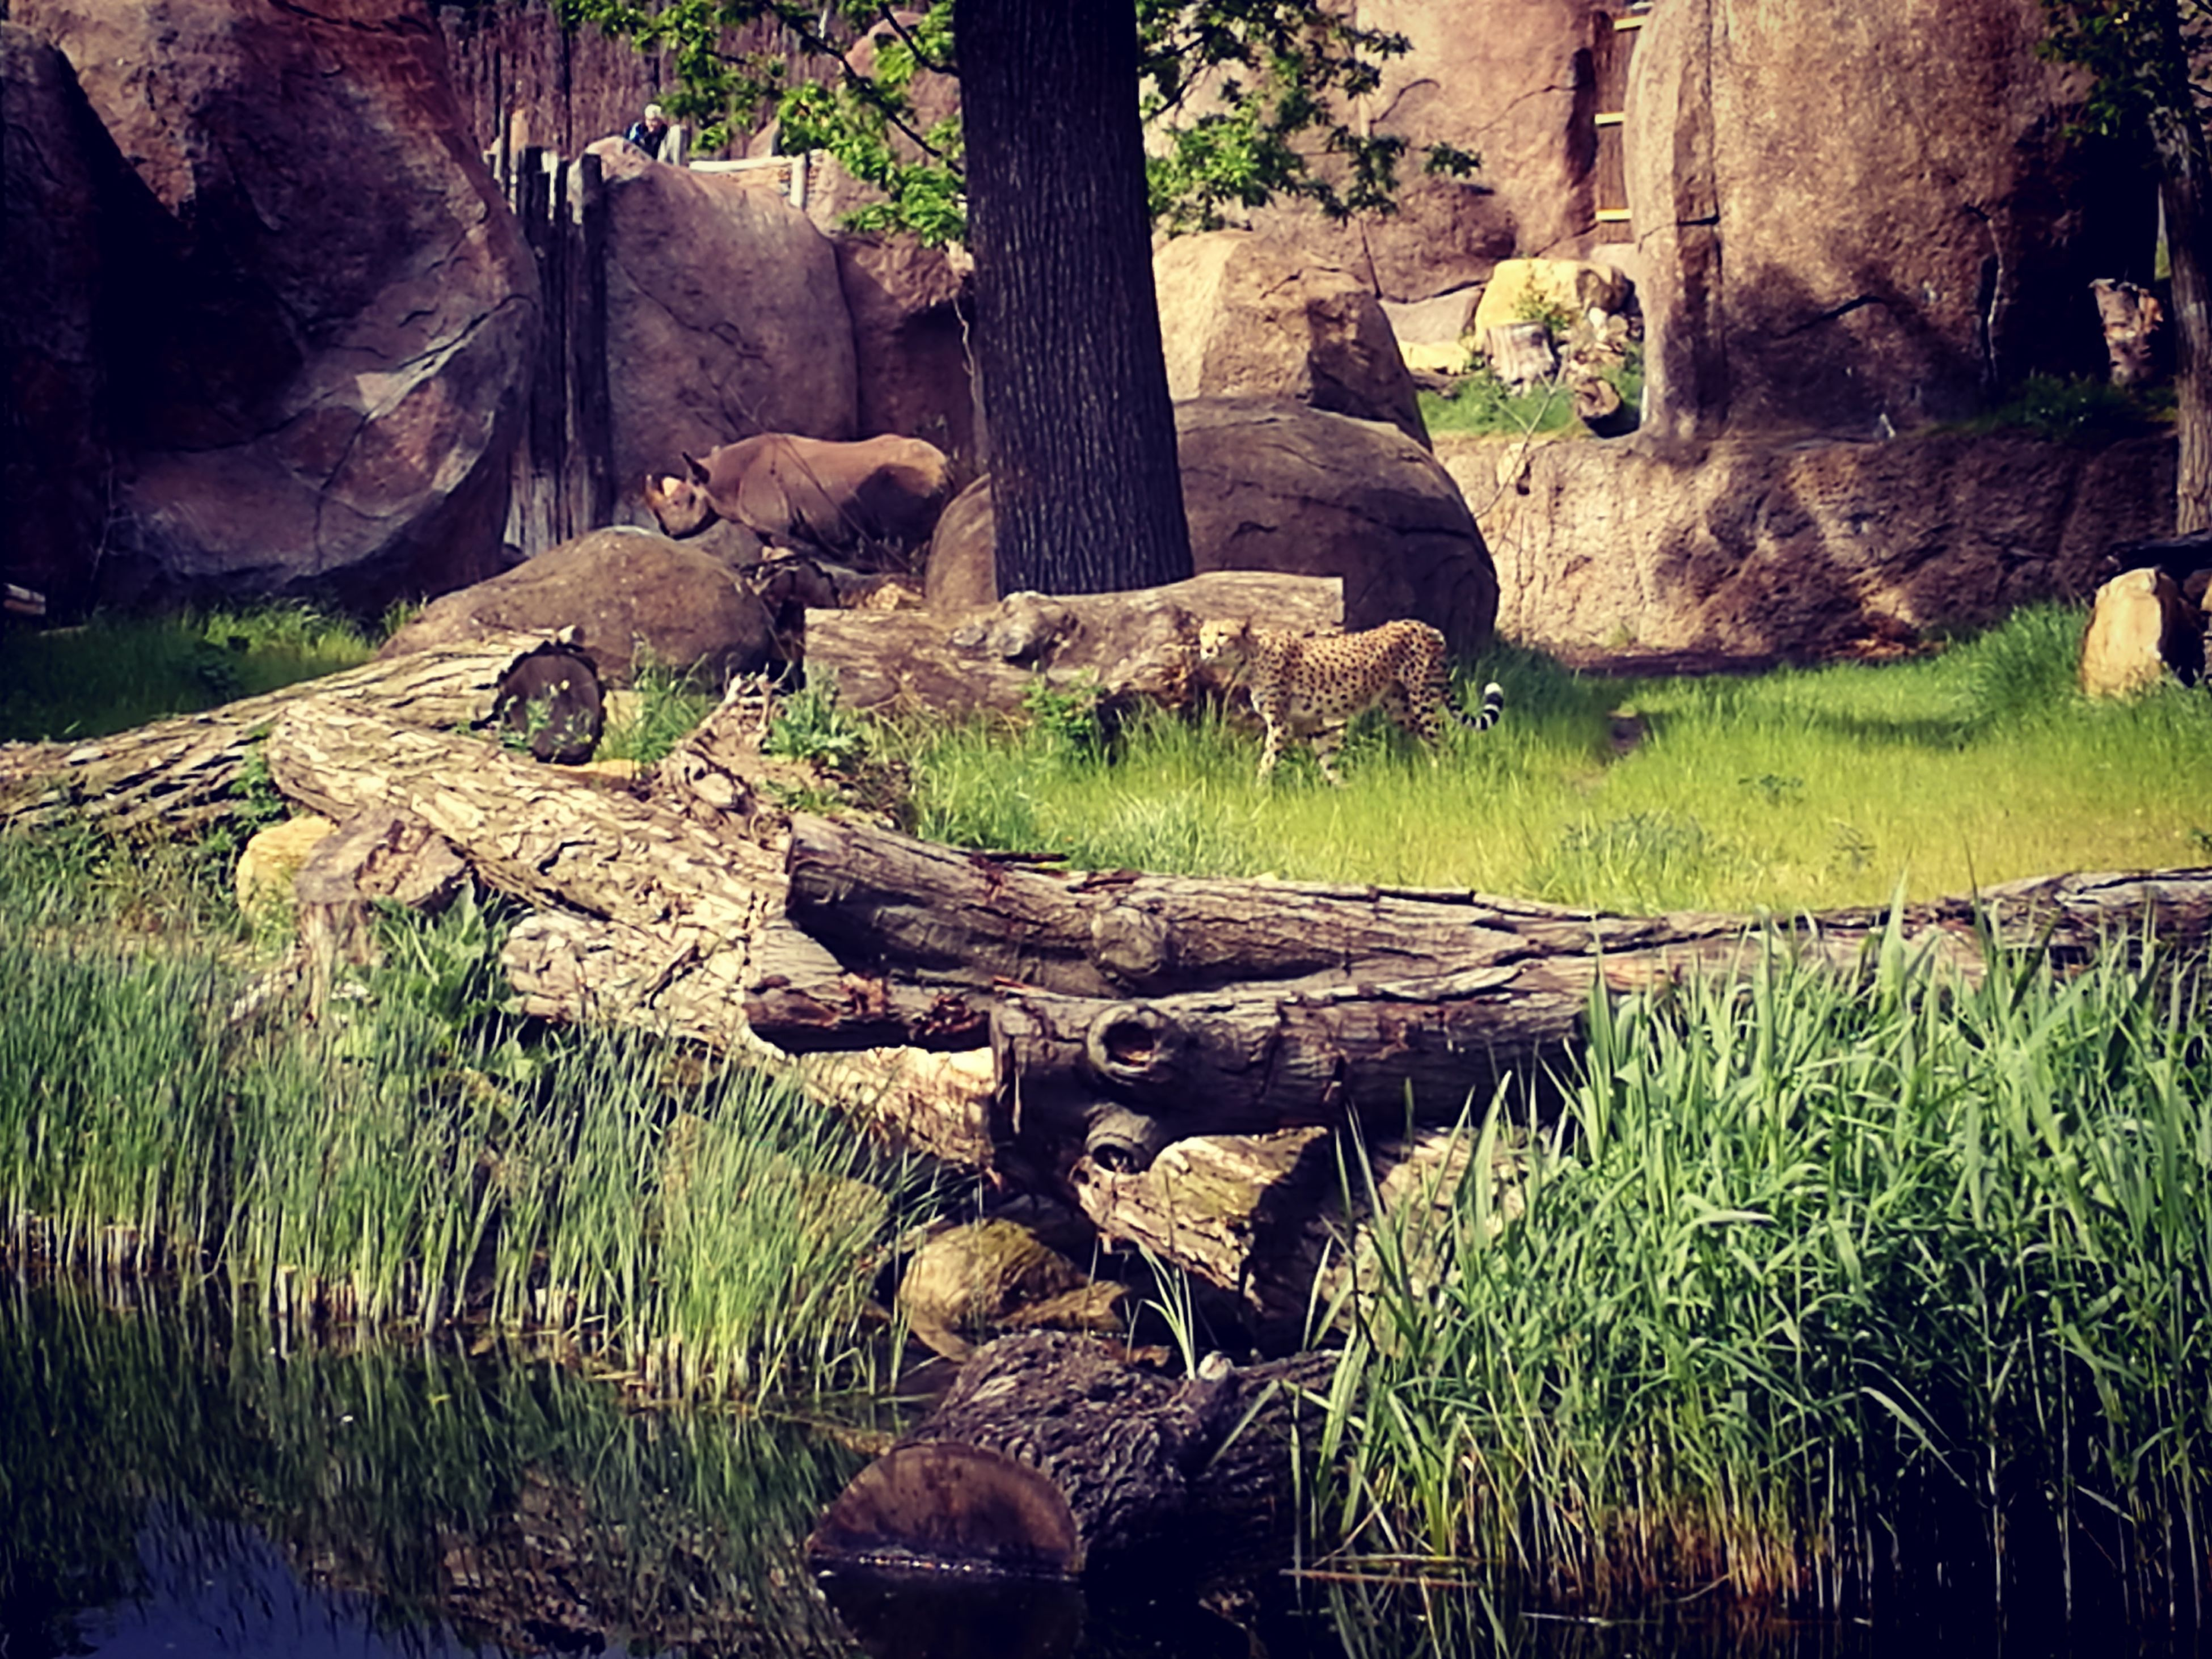 grass, plant, growth, nature, tranquility, rock - object, tree, green color, tree trunk, forest, beauty in nature, tranquil scene, stream, moss, day, rock formation, scenics, landscape, outdoors, sunlight